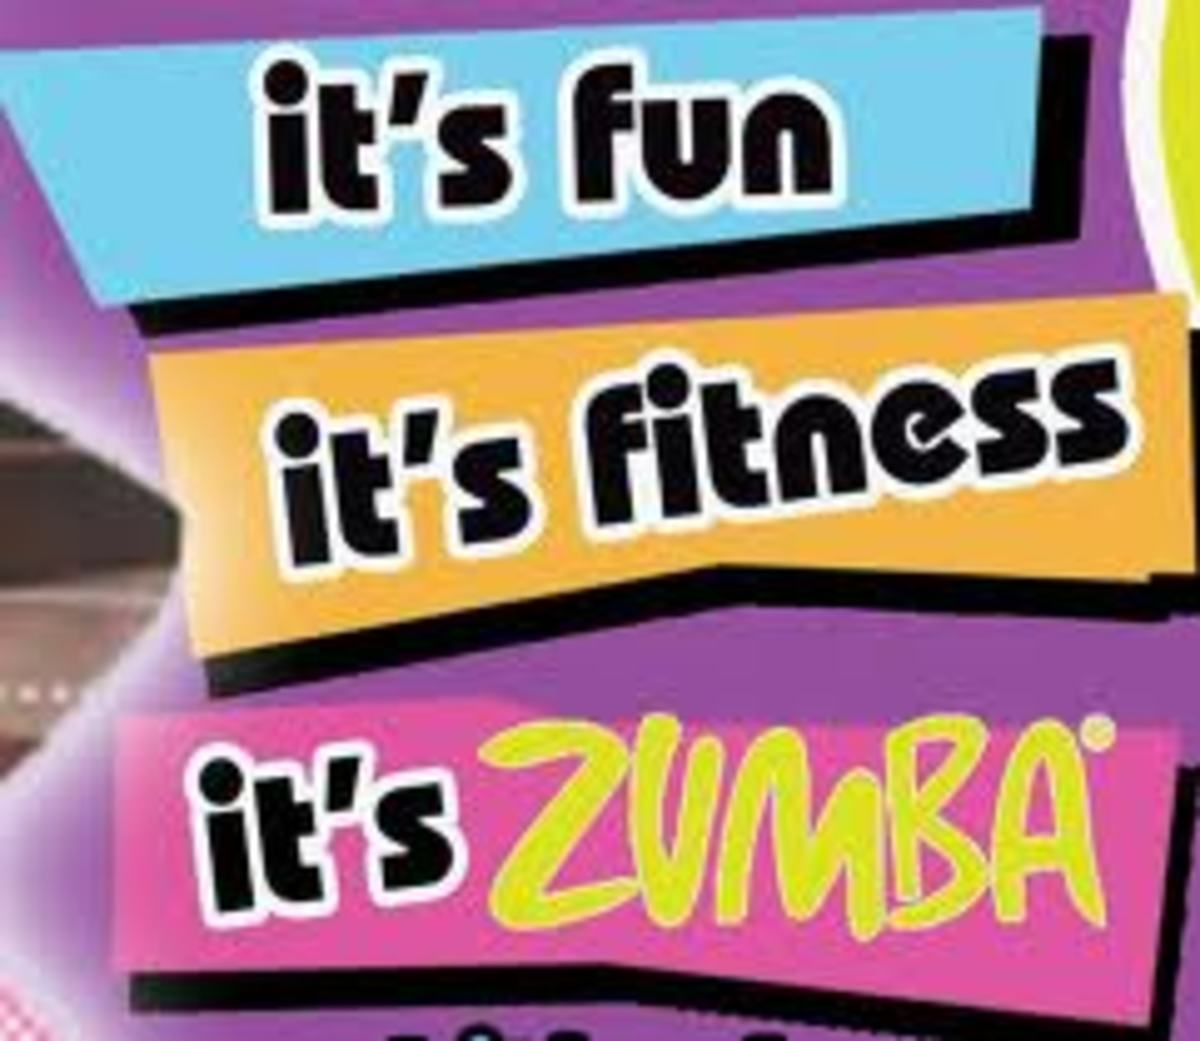 whats-so-great-about-zumba